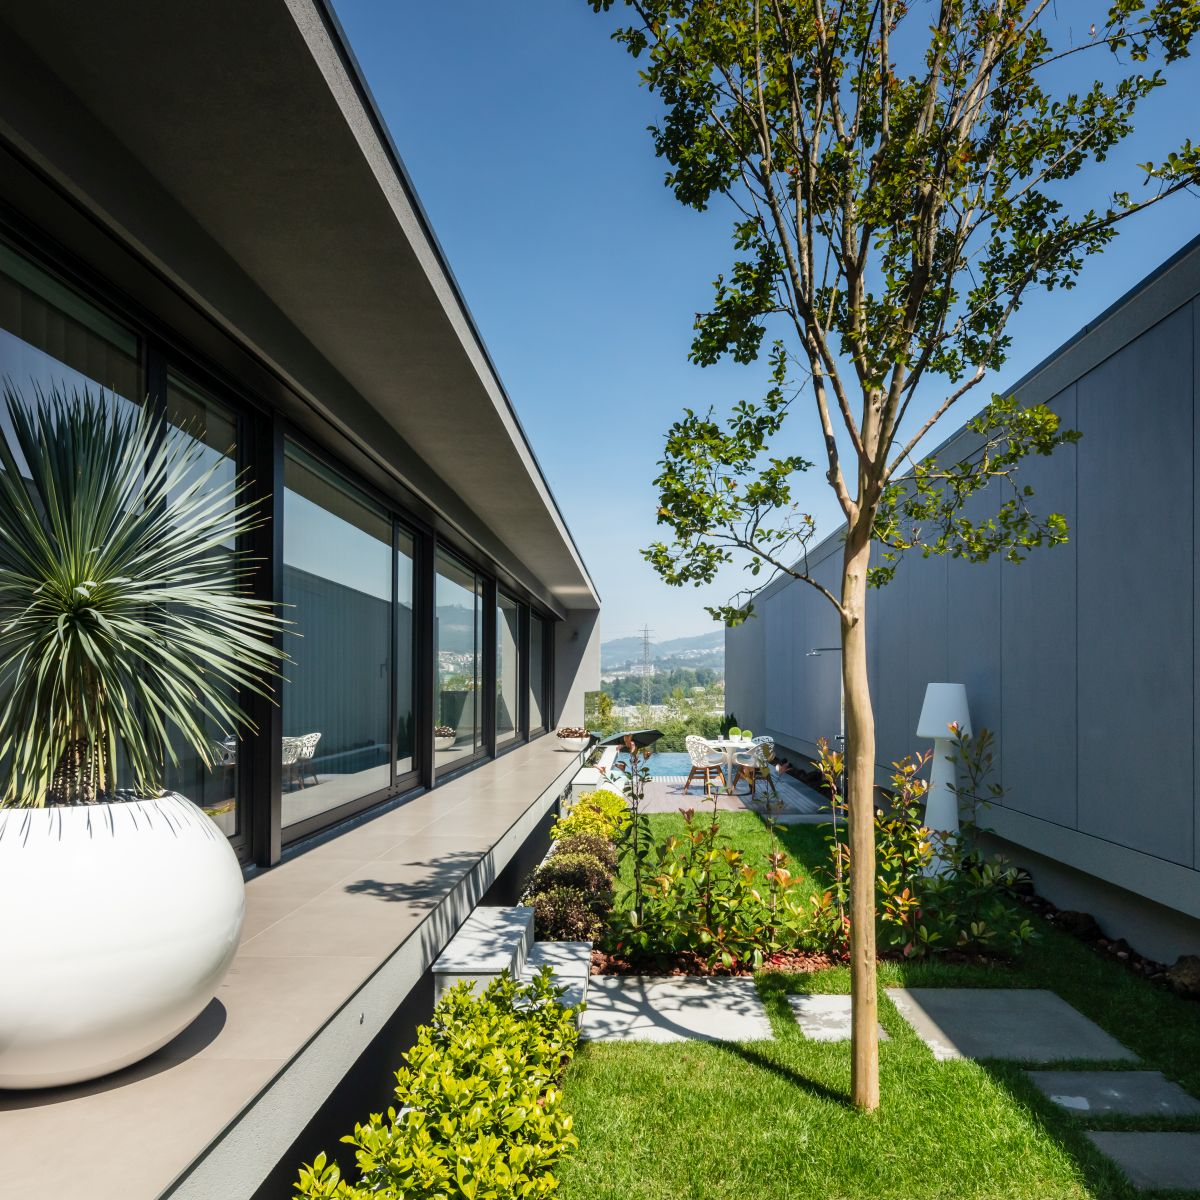 Although small, the courtyards between the houses ensure a close connection between nature and architecture